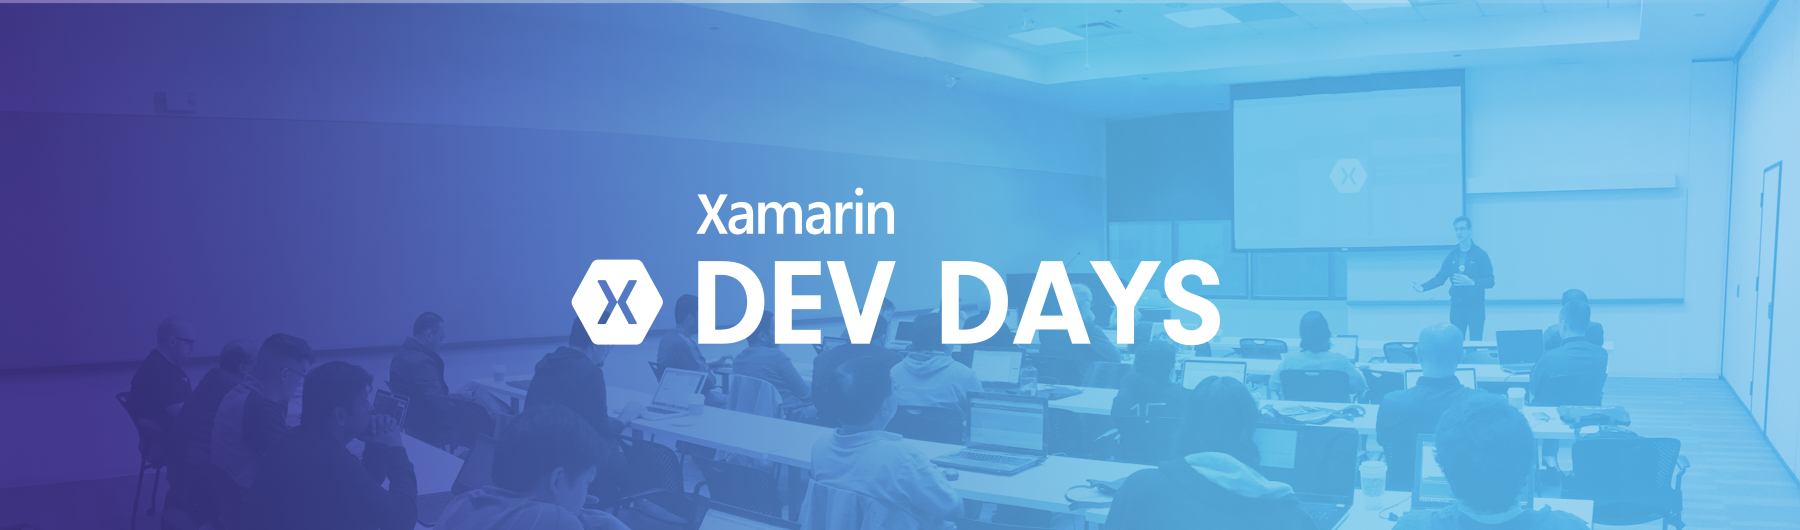 Xamarin Dev Days - Lima